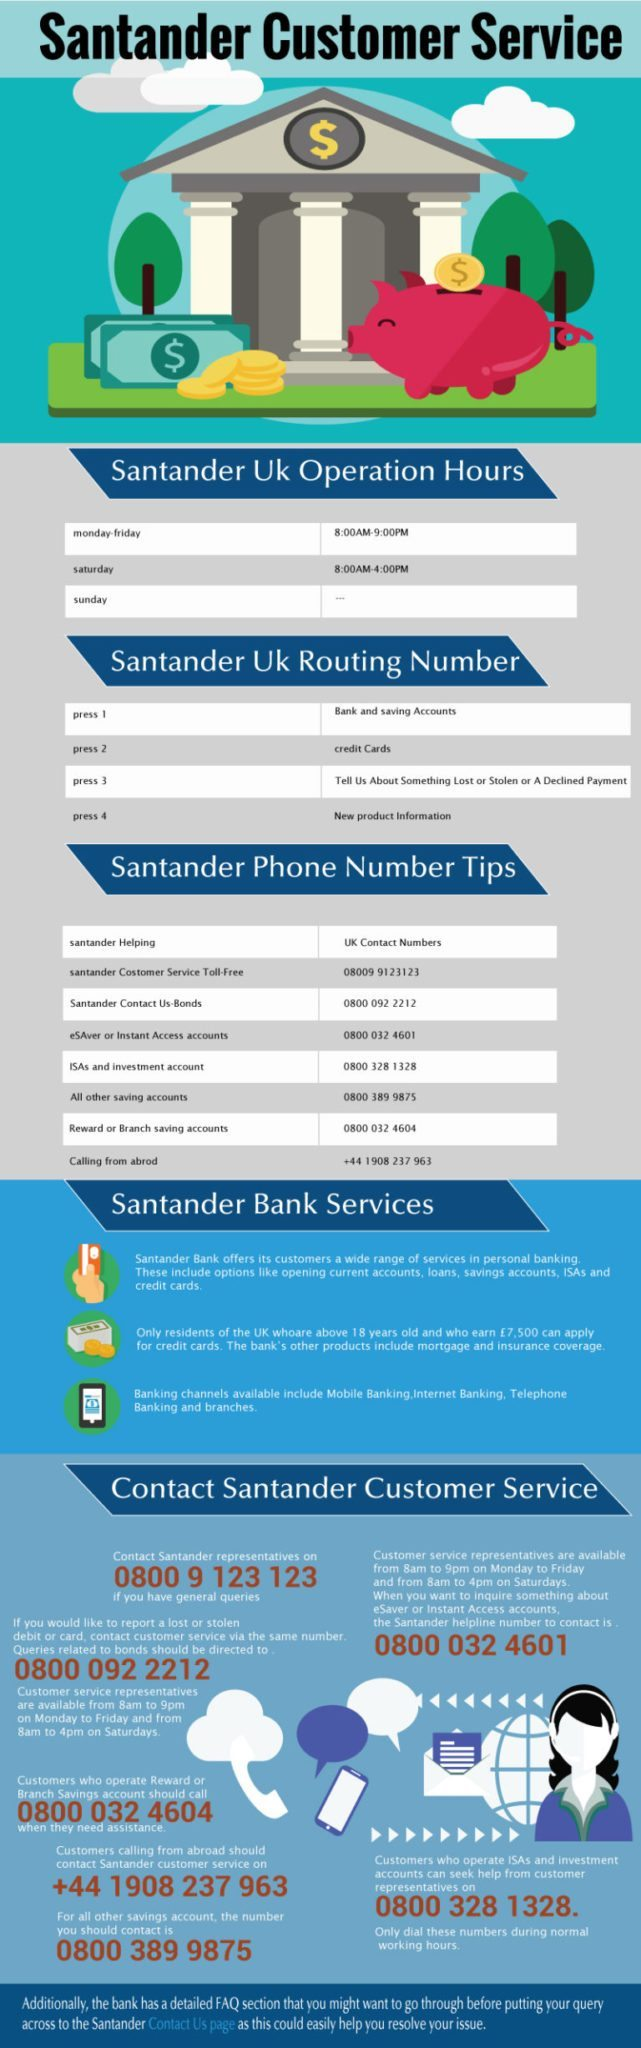 Santander Customer Service Number